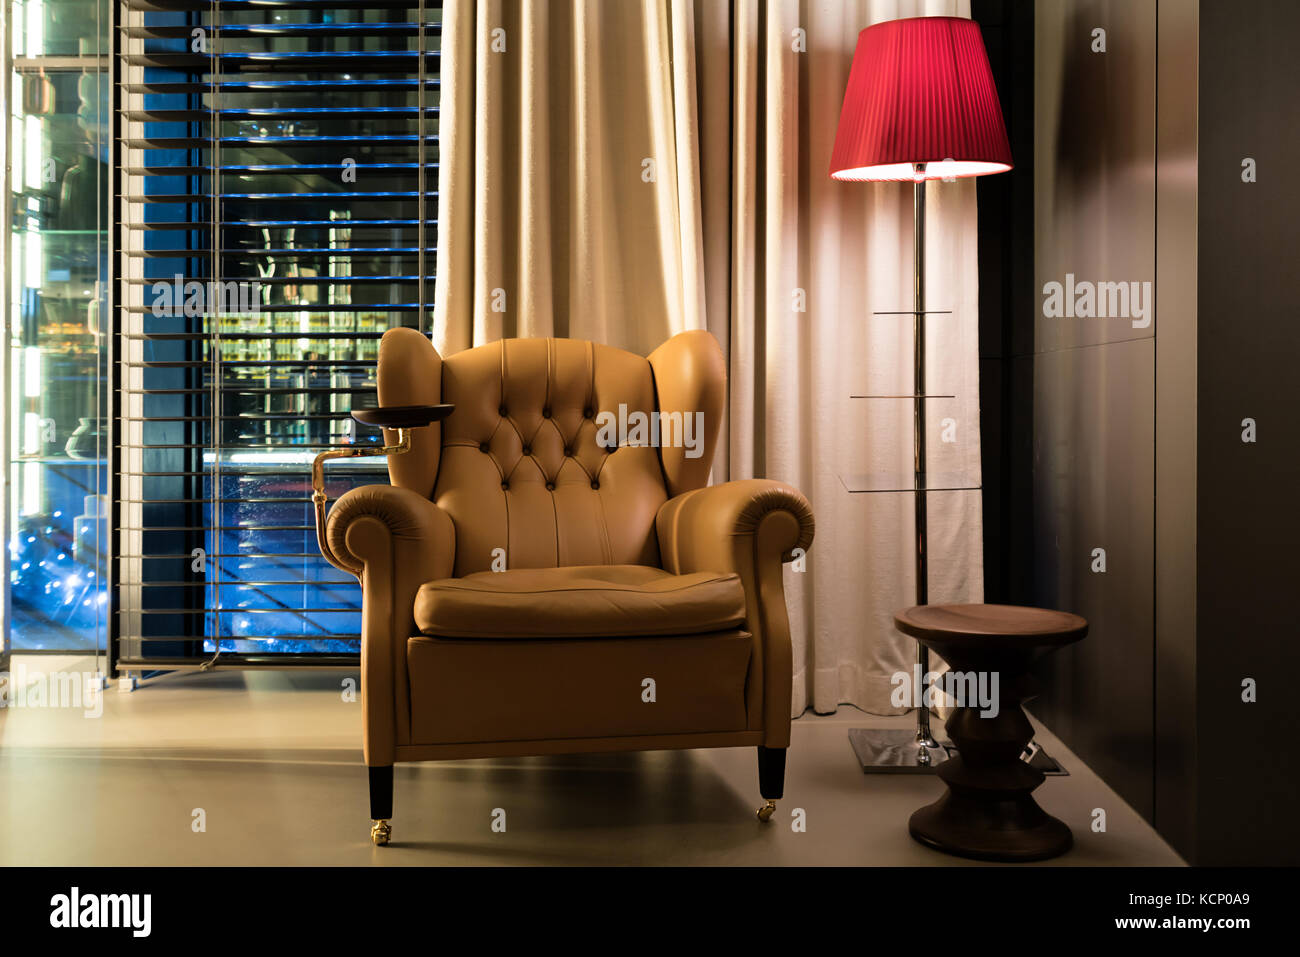 Leather armchair coffee table and floor lamp in lobby at hotel stock leather armchair coffee table and floor lamp in lobby at hotel interior design of classic leather chair and lamp in dim room aloadofball Image collections